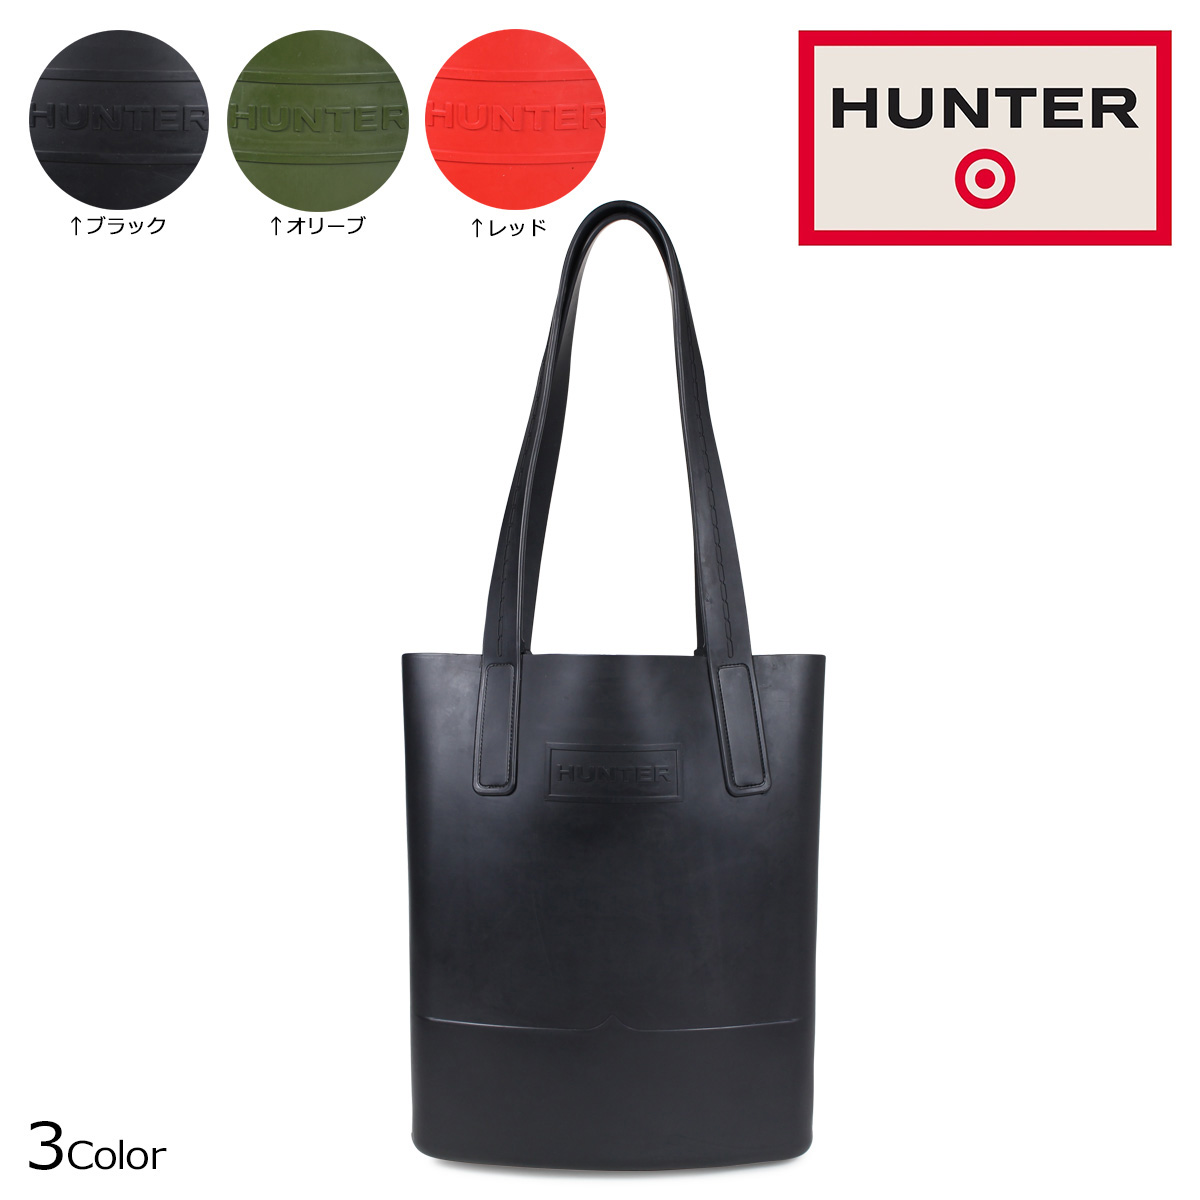 30eddee85 HUNTER hunter bag tote bag Lady's men target TARGET RUBBER SLING TOTE BAG  black red green ...